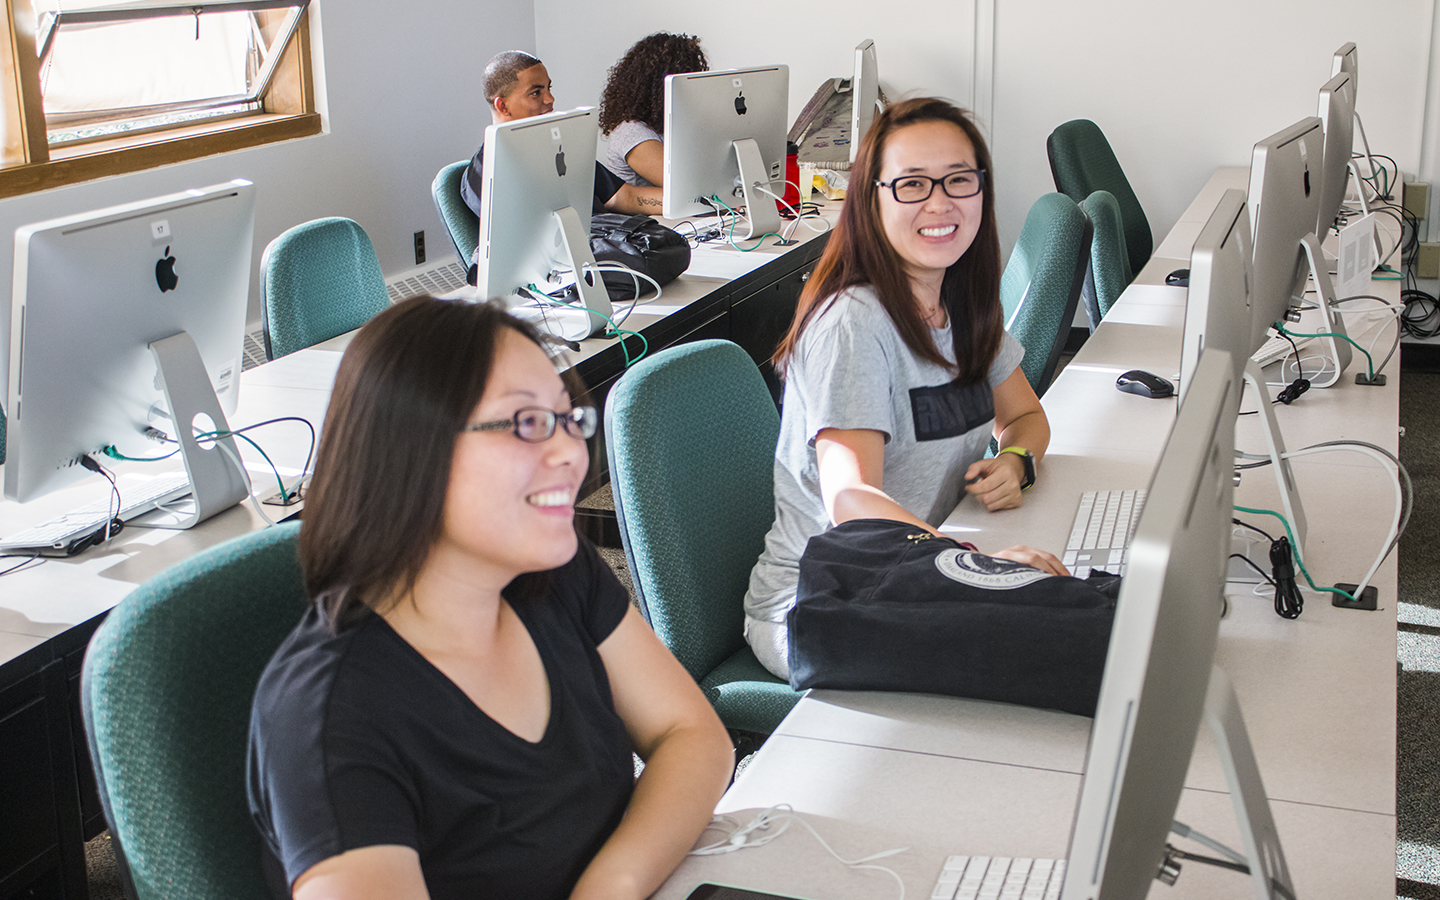 HNU students in the classroom